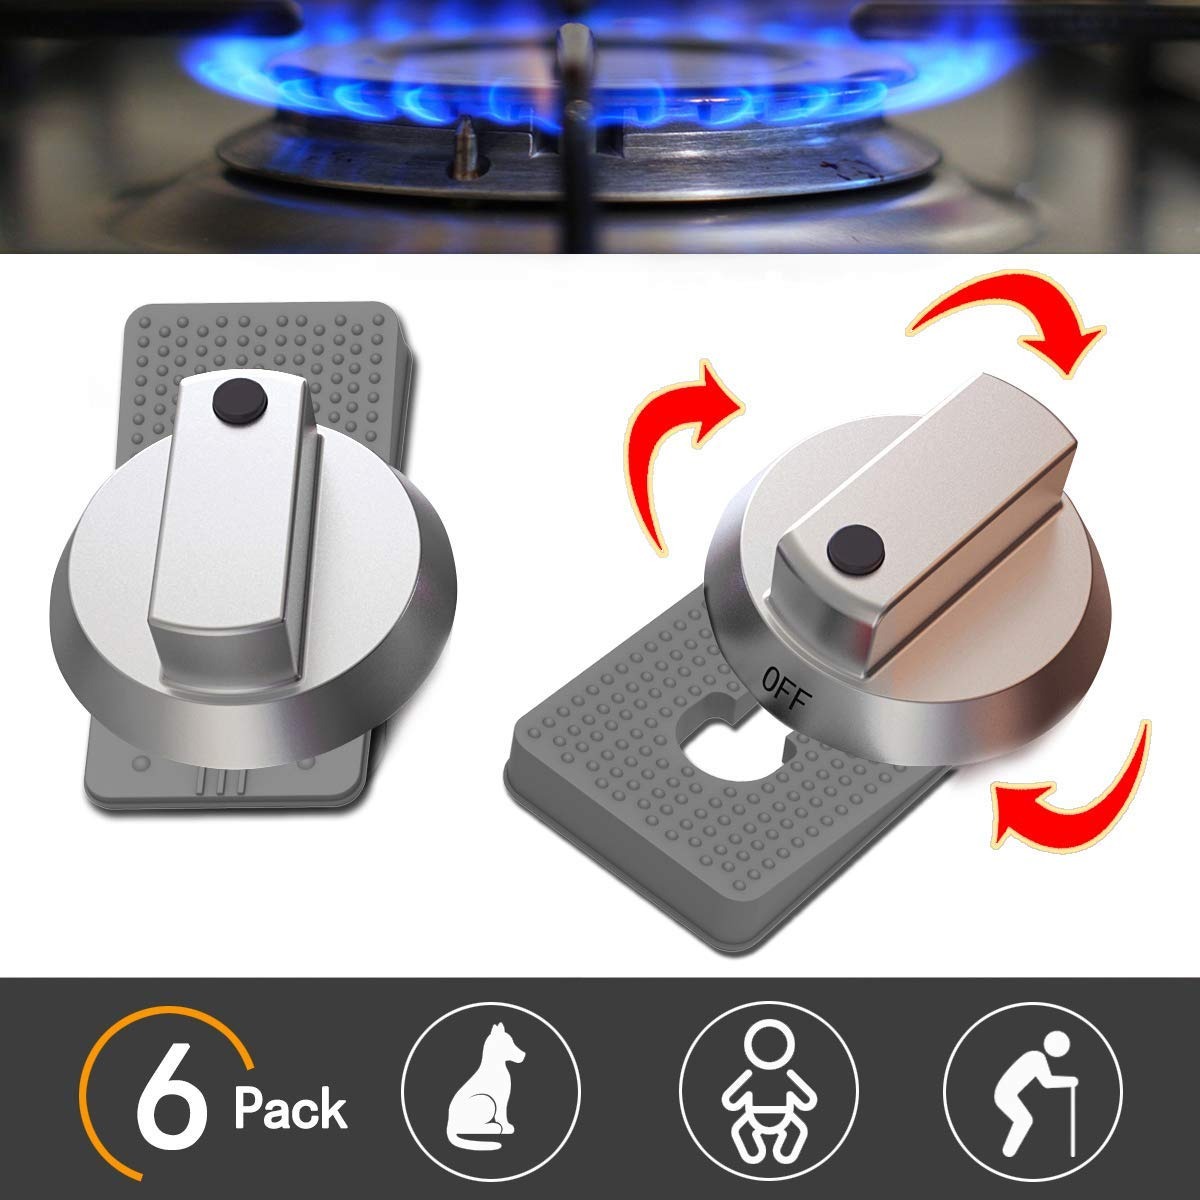 Baby Safety Oven Knob Locks - Childproof and Pet Kitchen Gas Stove Safety Guard (6PACK) (Grey)